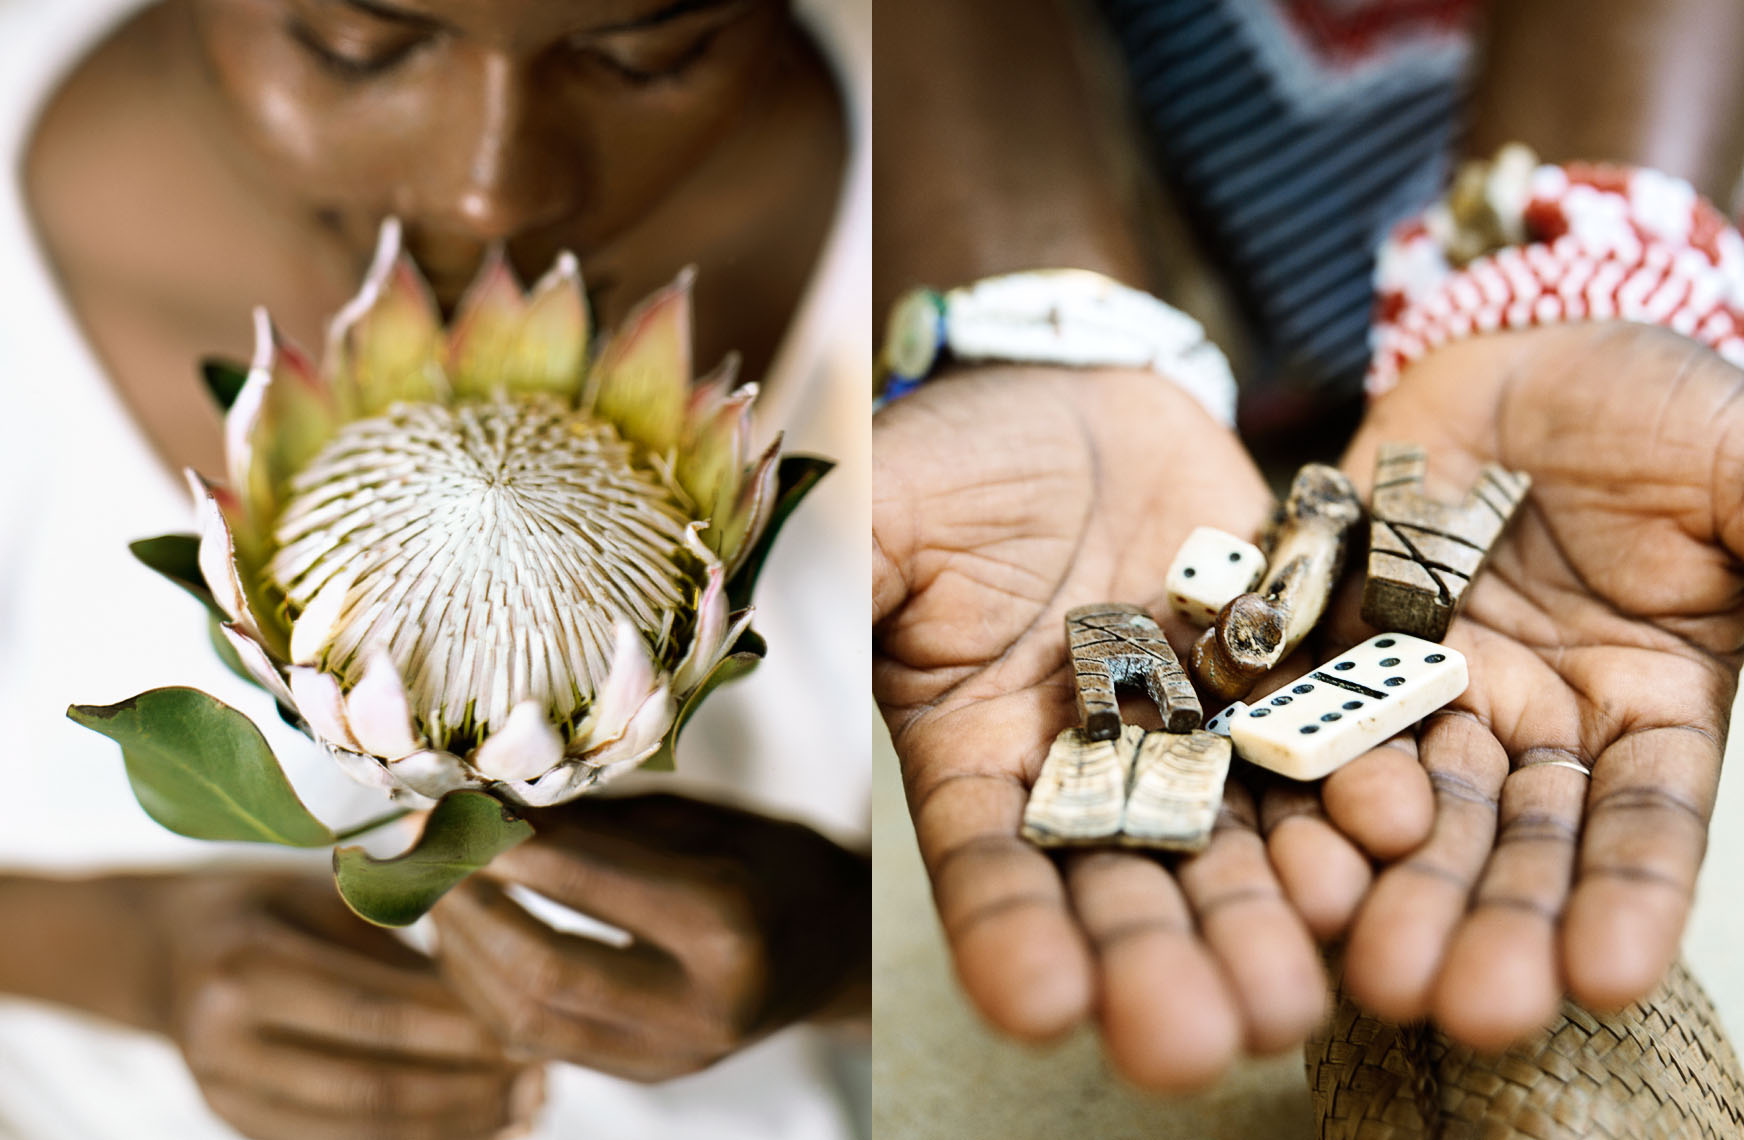 Proteas, the national flower of South Africa, grow wild at Kirstenbosch National Botanical Gardens in Cape Town.  A sangoma is a traditional healer and fortune teller, shown here displaying some of the charms she uses to forecast the future